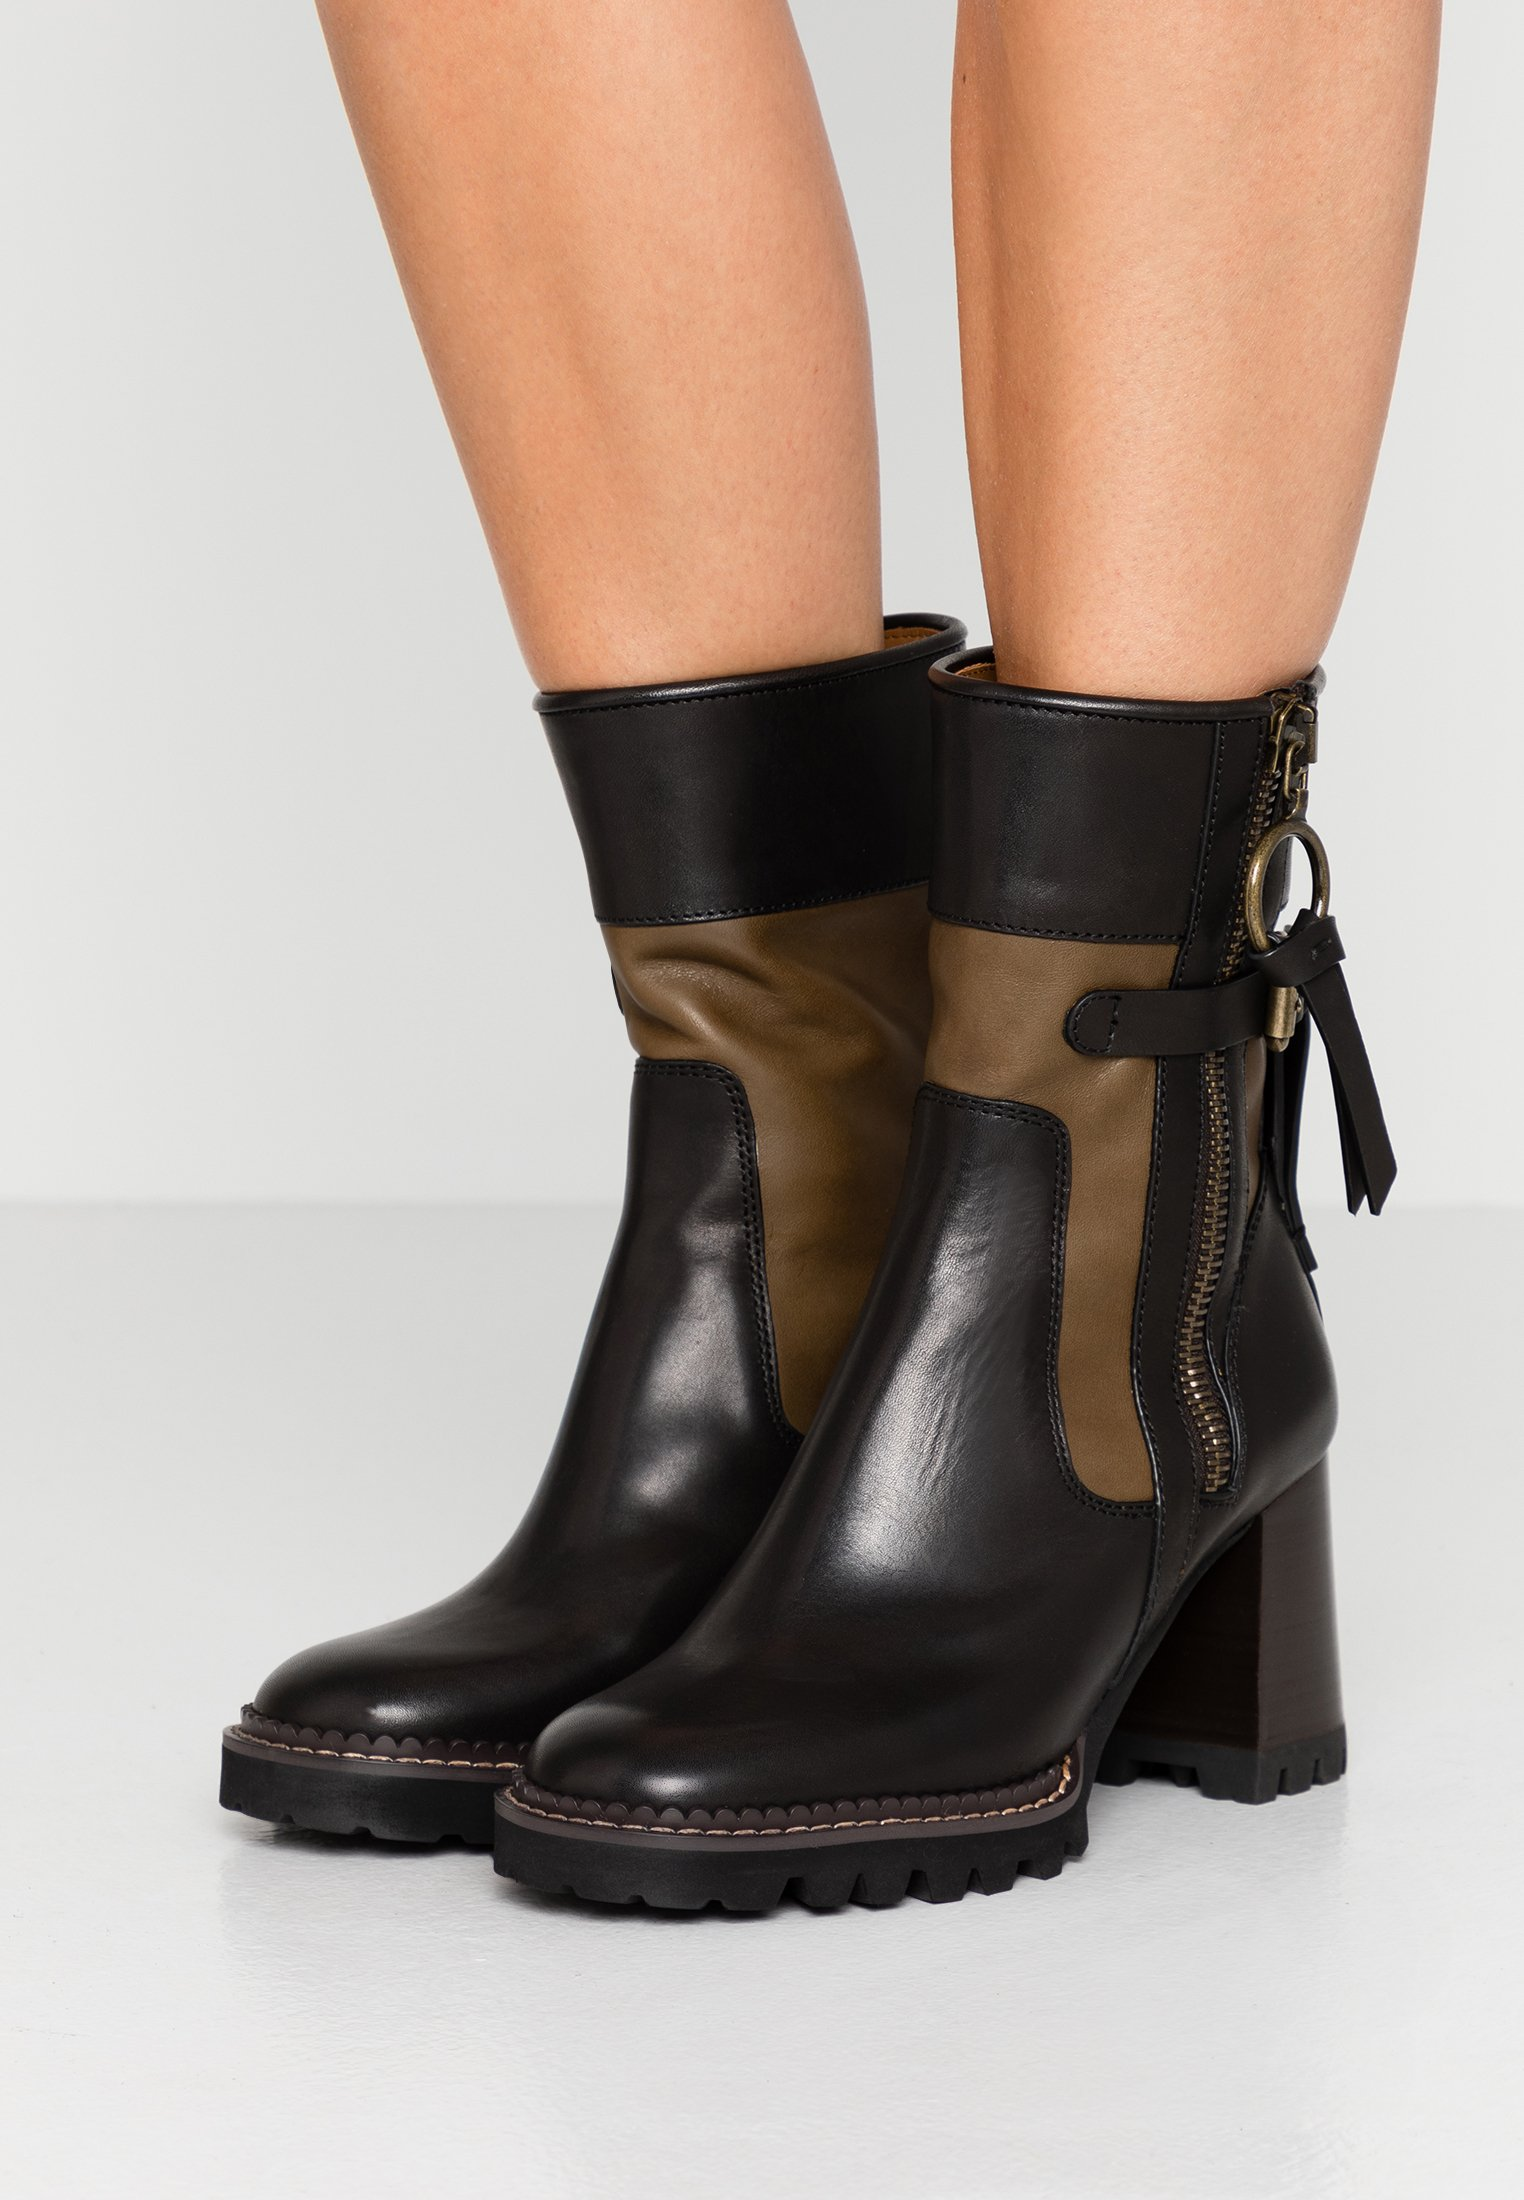 by Chloé Bottines See by See See nero Bottines nero by Chloé hdtsrxQC